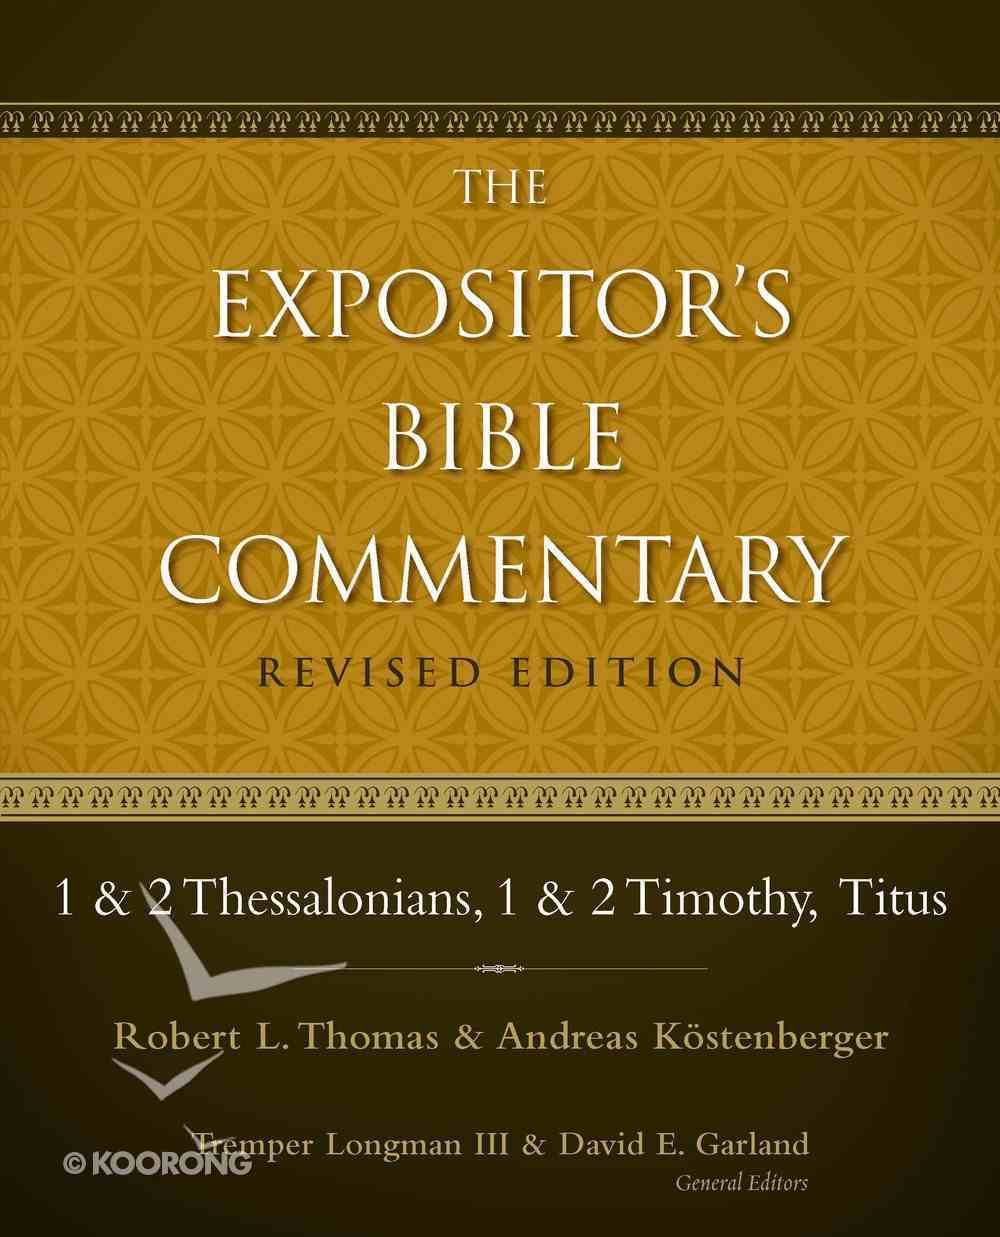 1 & 2 Thessalonians, 1 & 2 Timothy, Titus (#11 in Expositor's Bible Commentary Revised Series) eBook